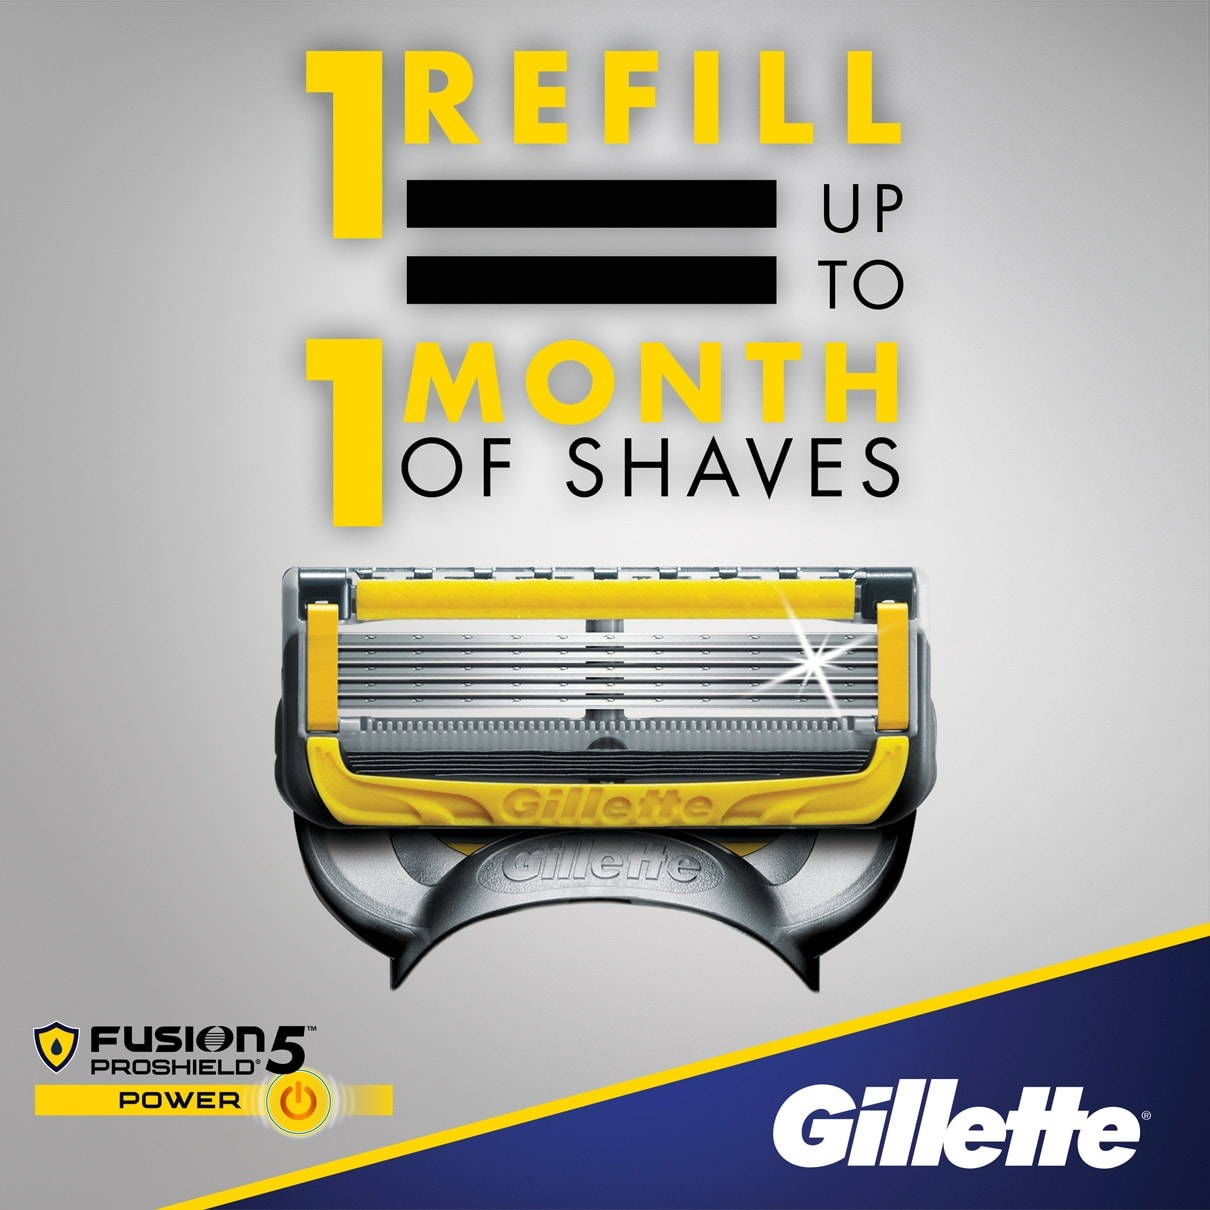 Shields skin from irritation. While you shave